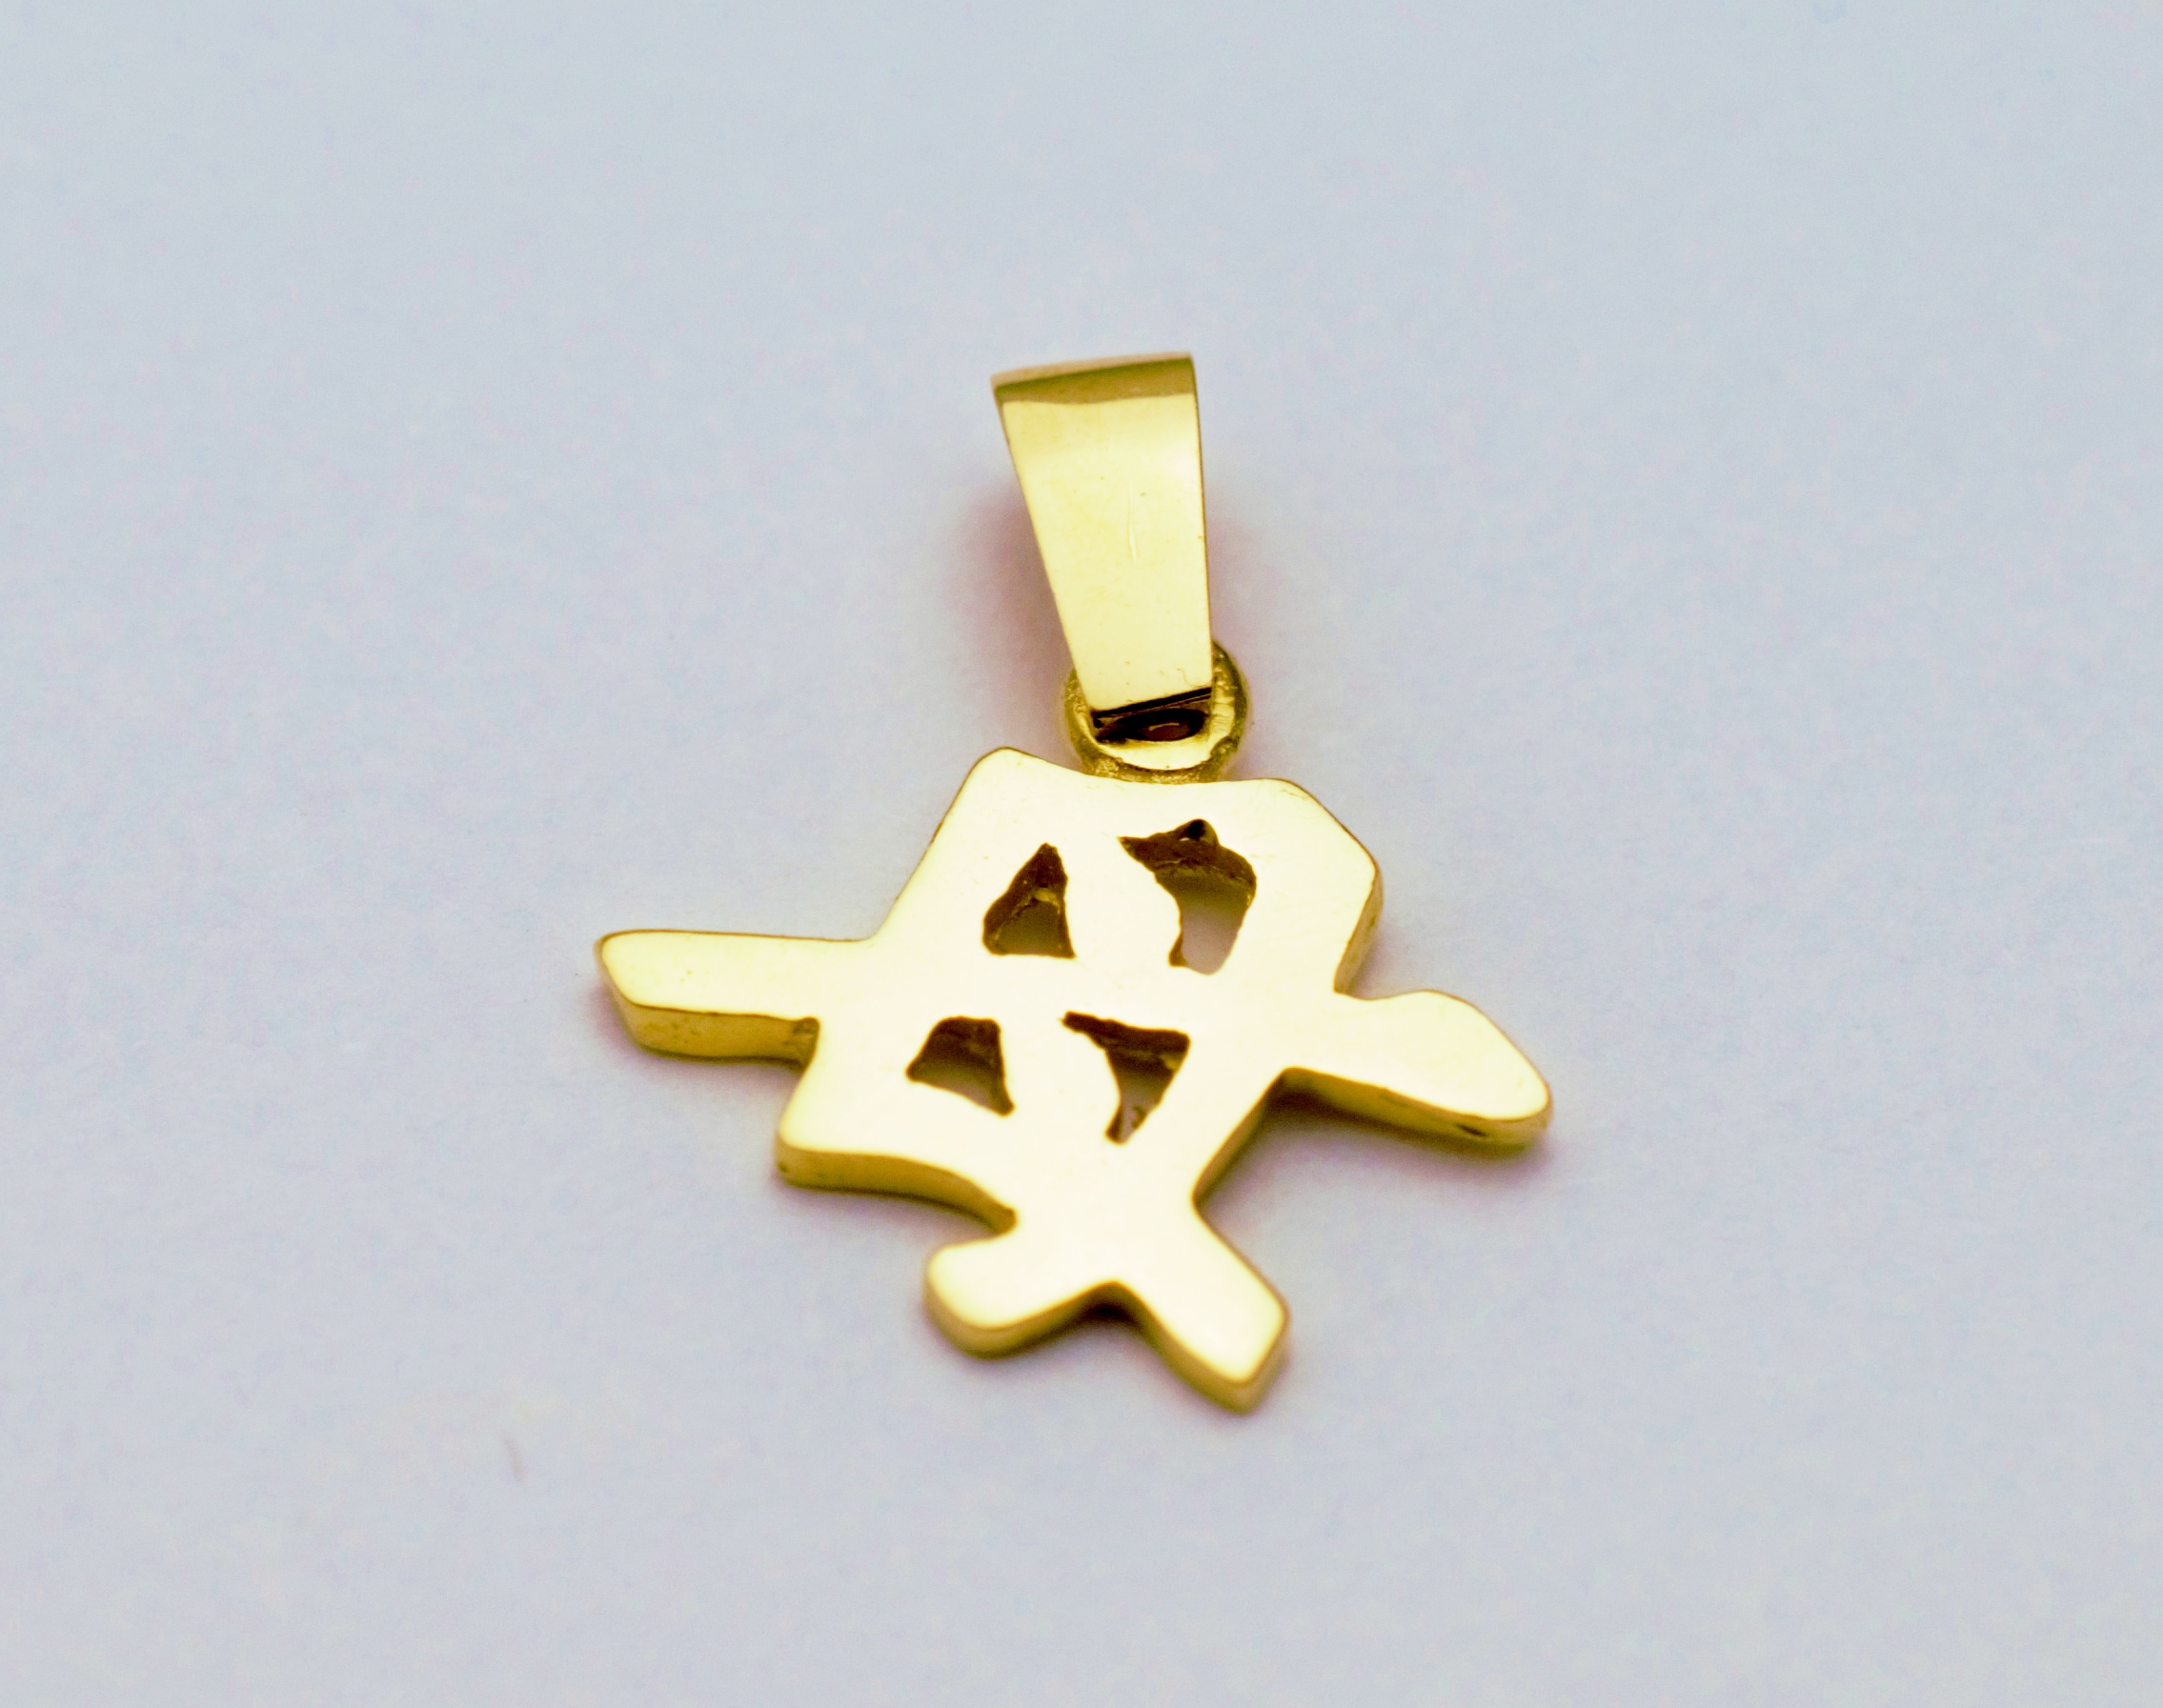 18k Yellow Gold 105 Grams Chinese Symbol Pendant With 14k Gold Bail